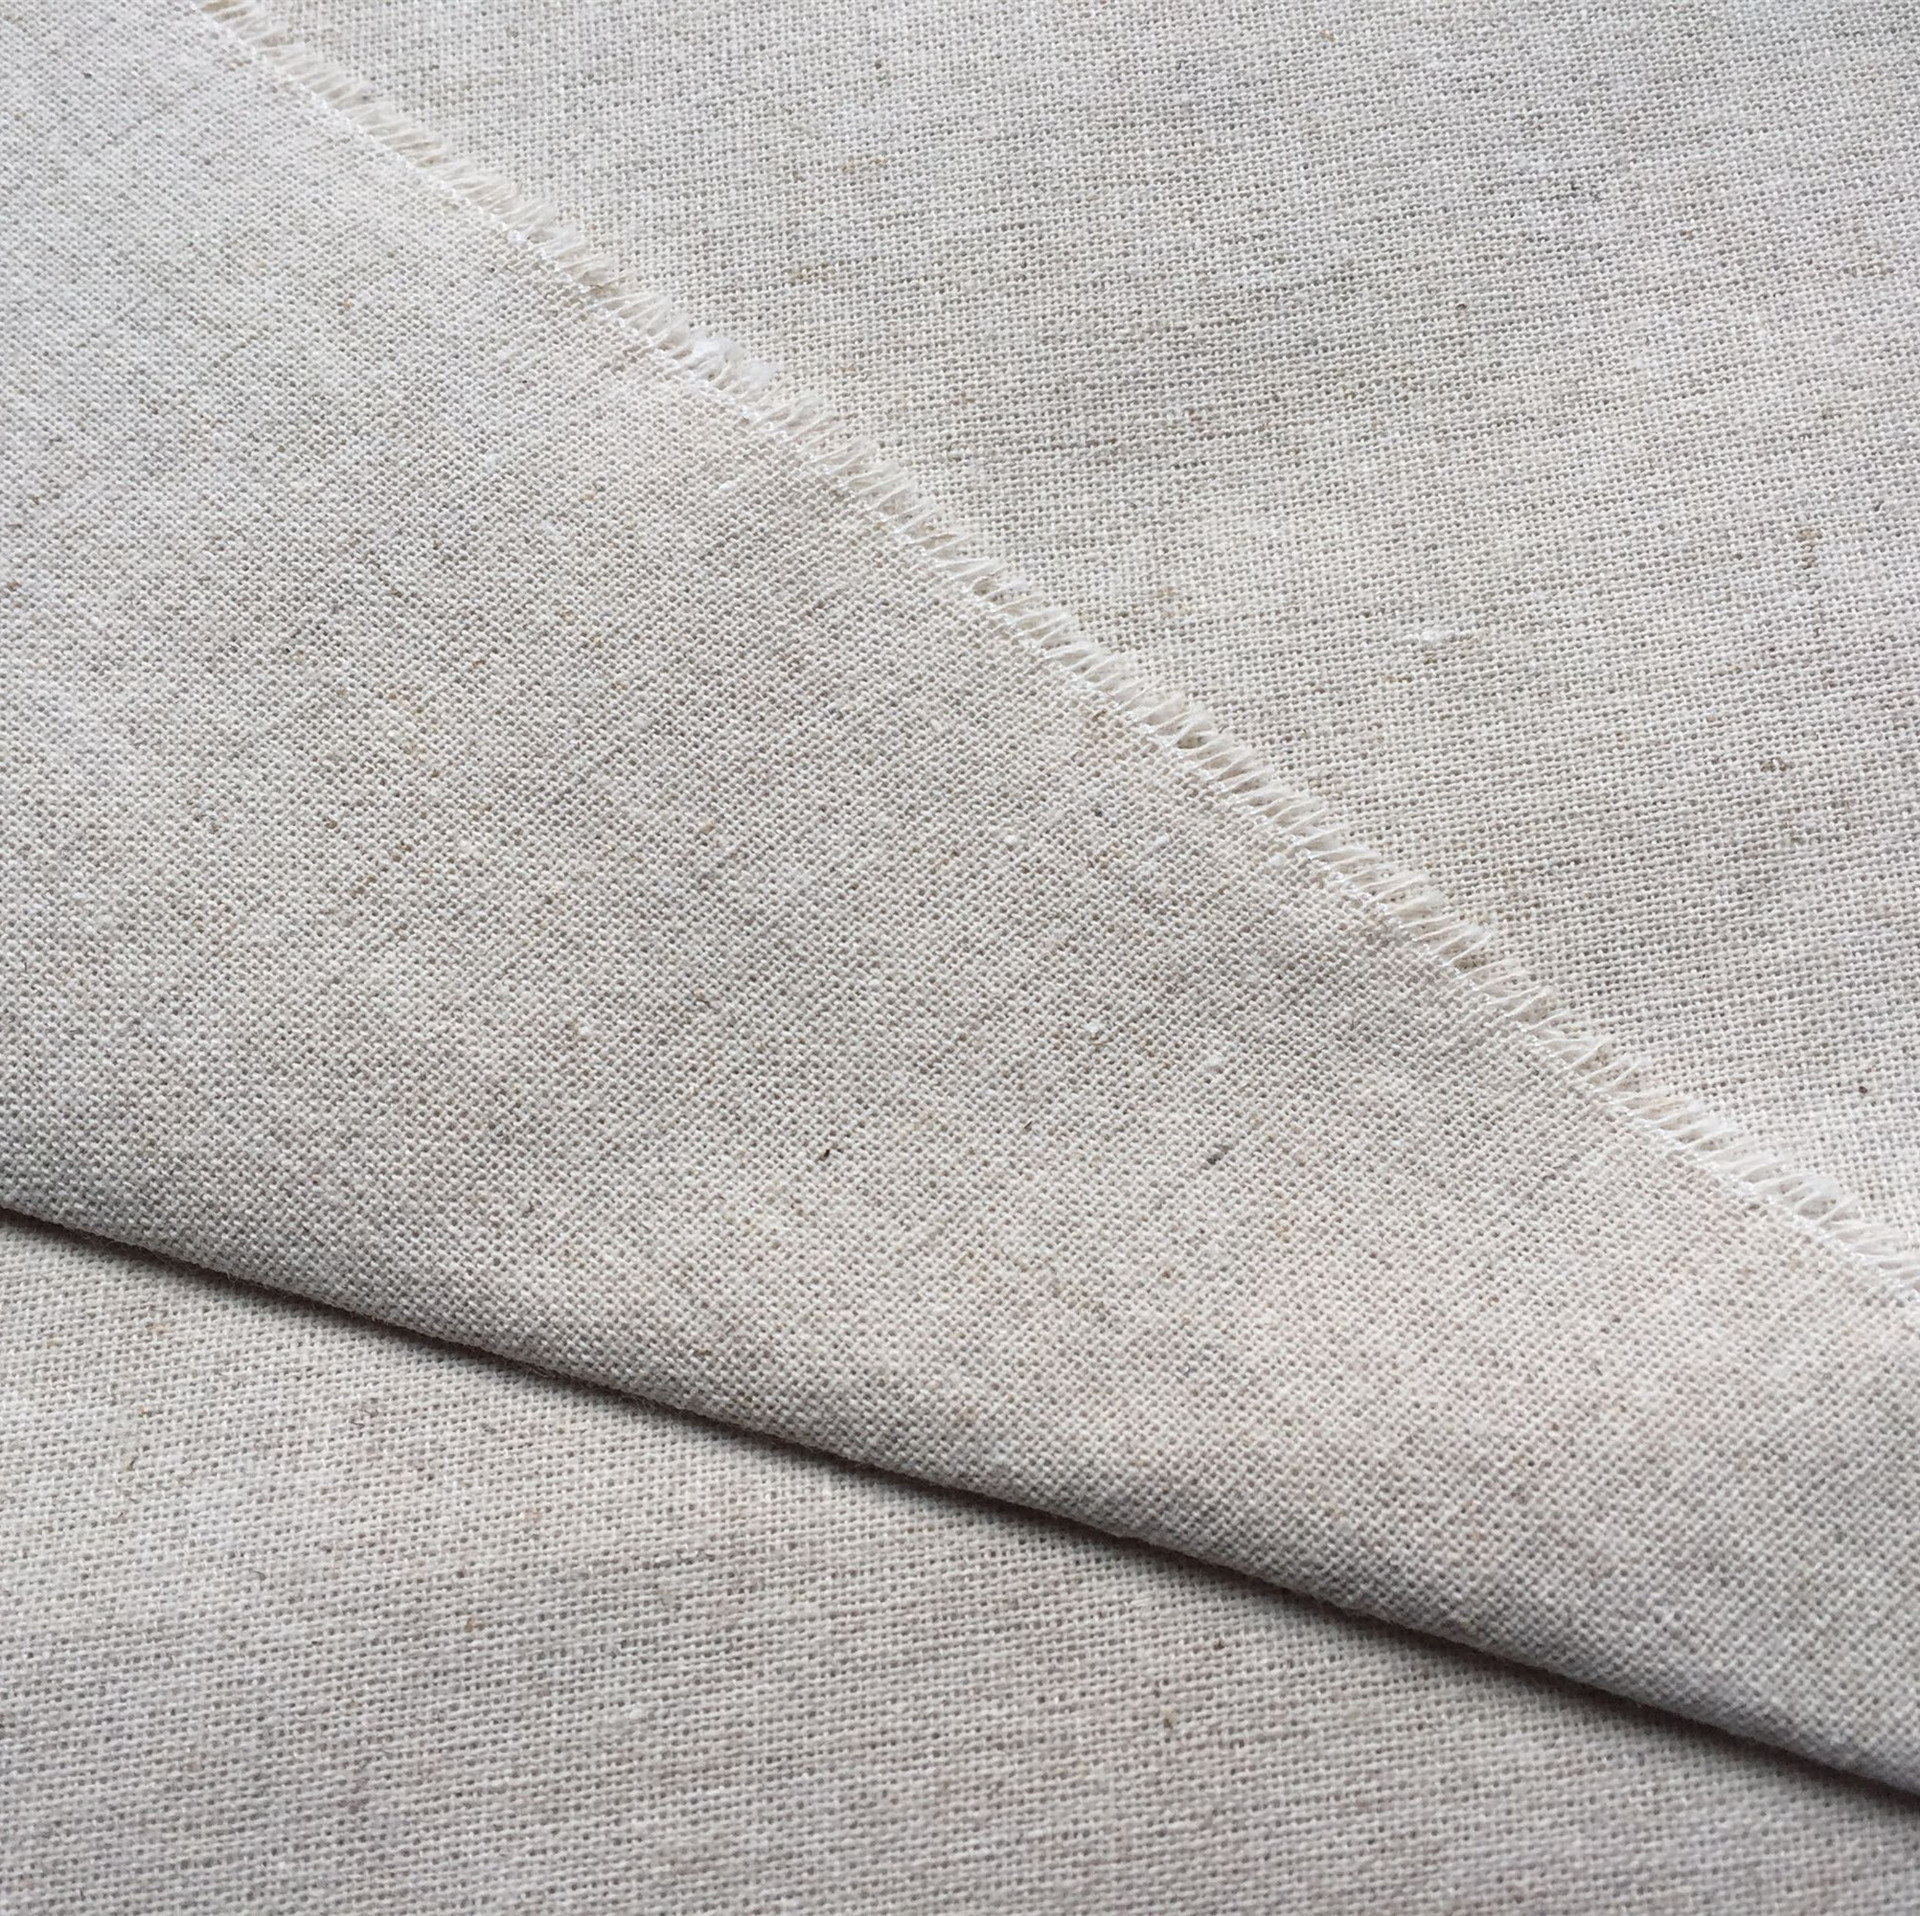 HEDU Primary color linen fabric, linen natural color linen fabric, fabric sofa, packaging background